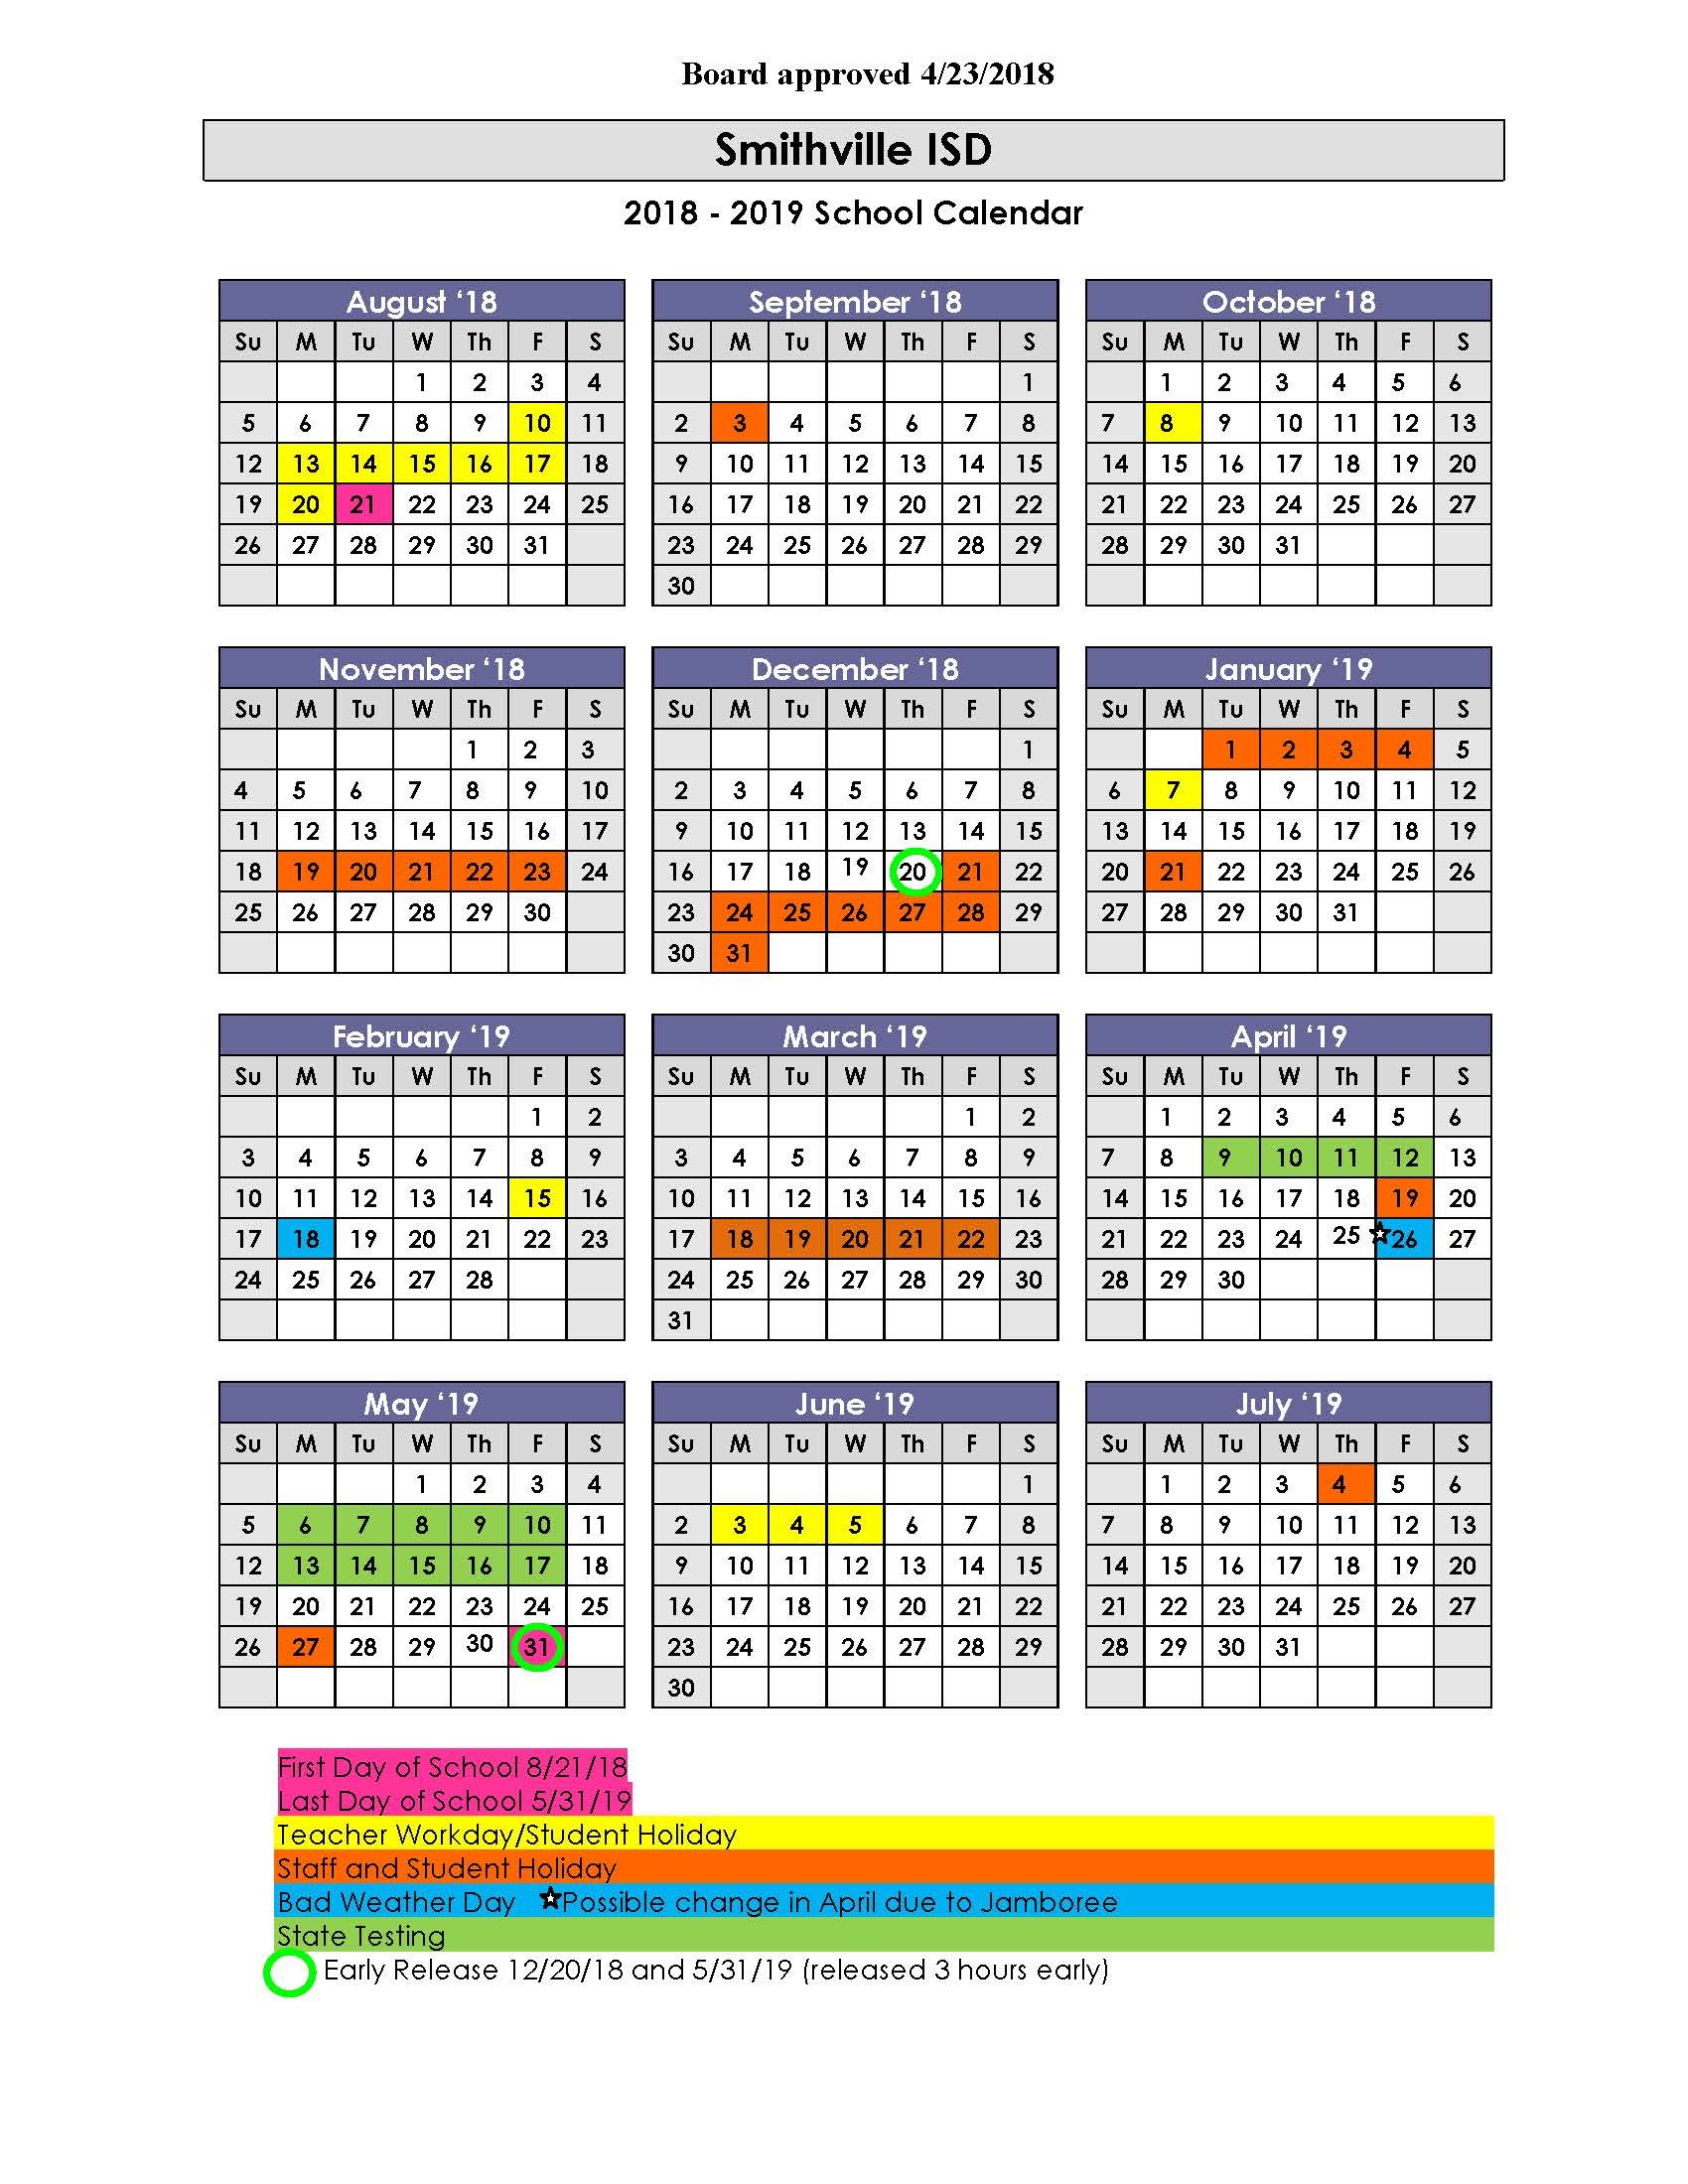 sjusd instructional calendar 2018-2019